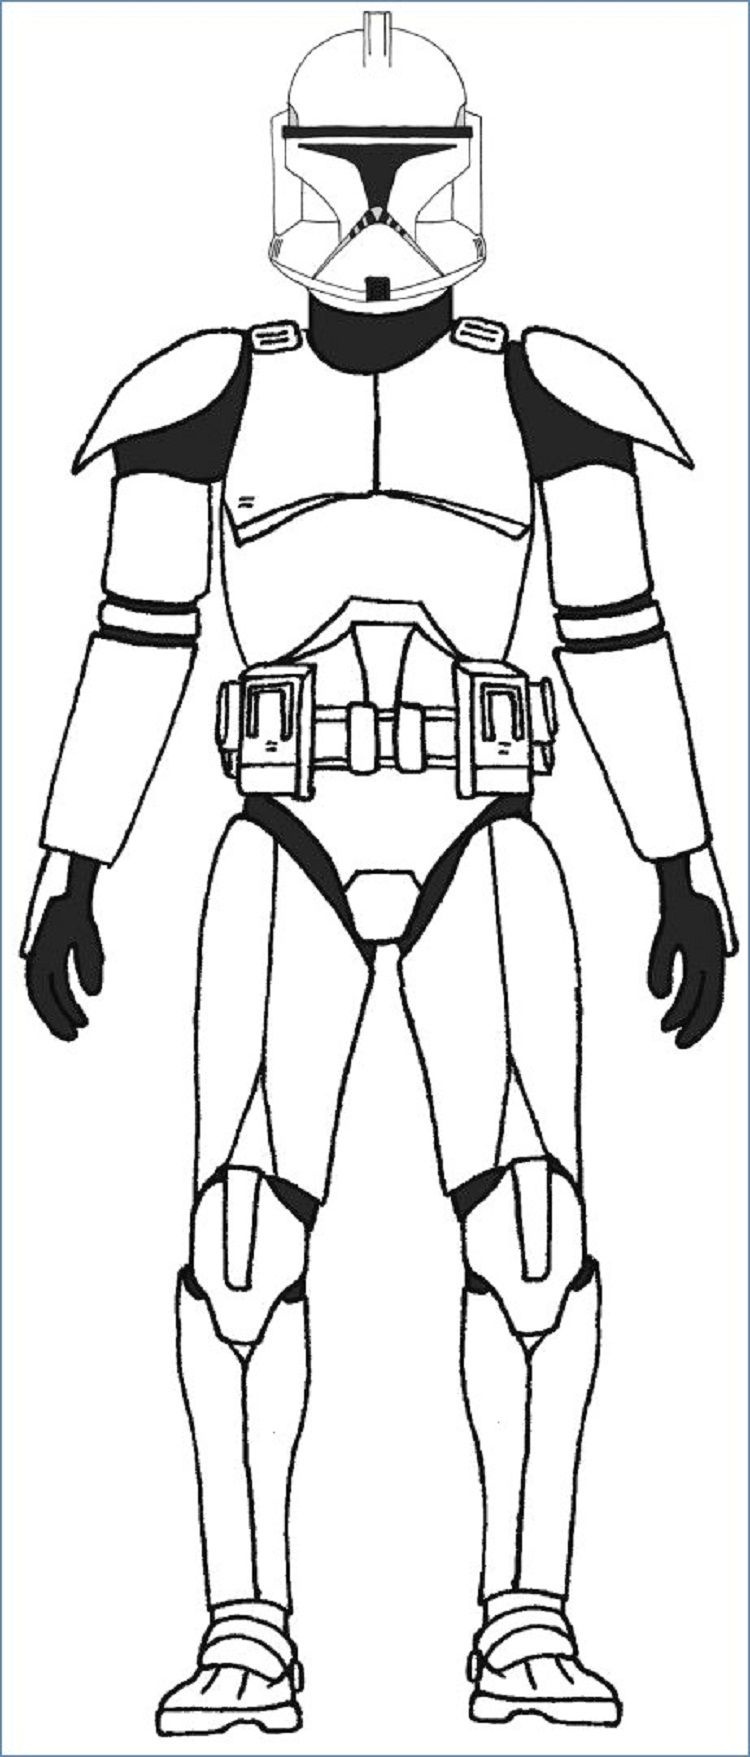 Star Wars Coloring Pages Captain Rex Star Wars Clone Wars Star Wars Drawings Star Wars Trooper